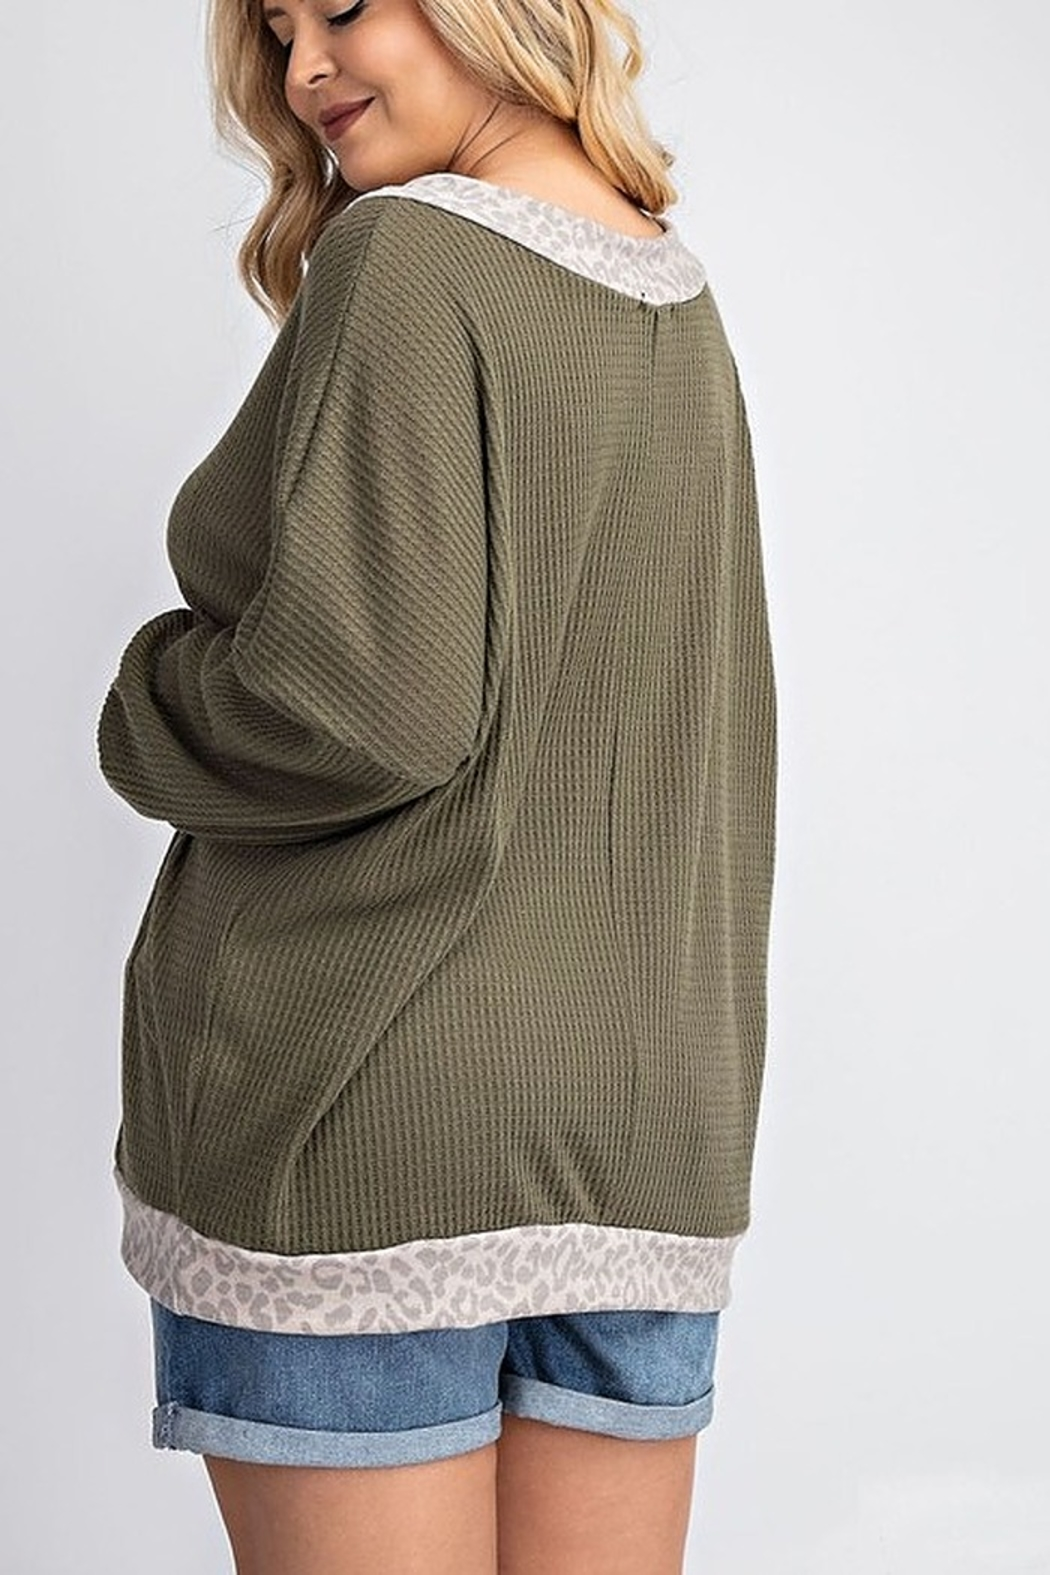 143 Story V NECK SLOUCHY WAFFLE KNIT TOP - Side Cropped Image